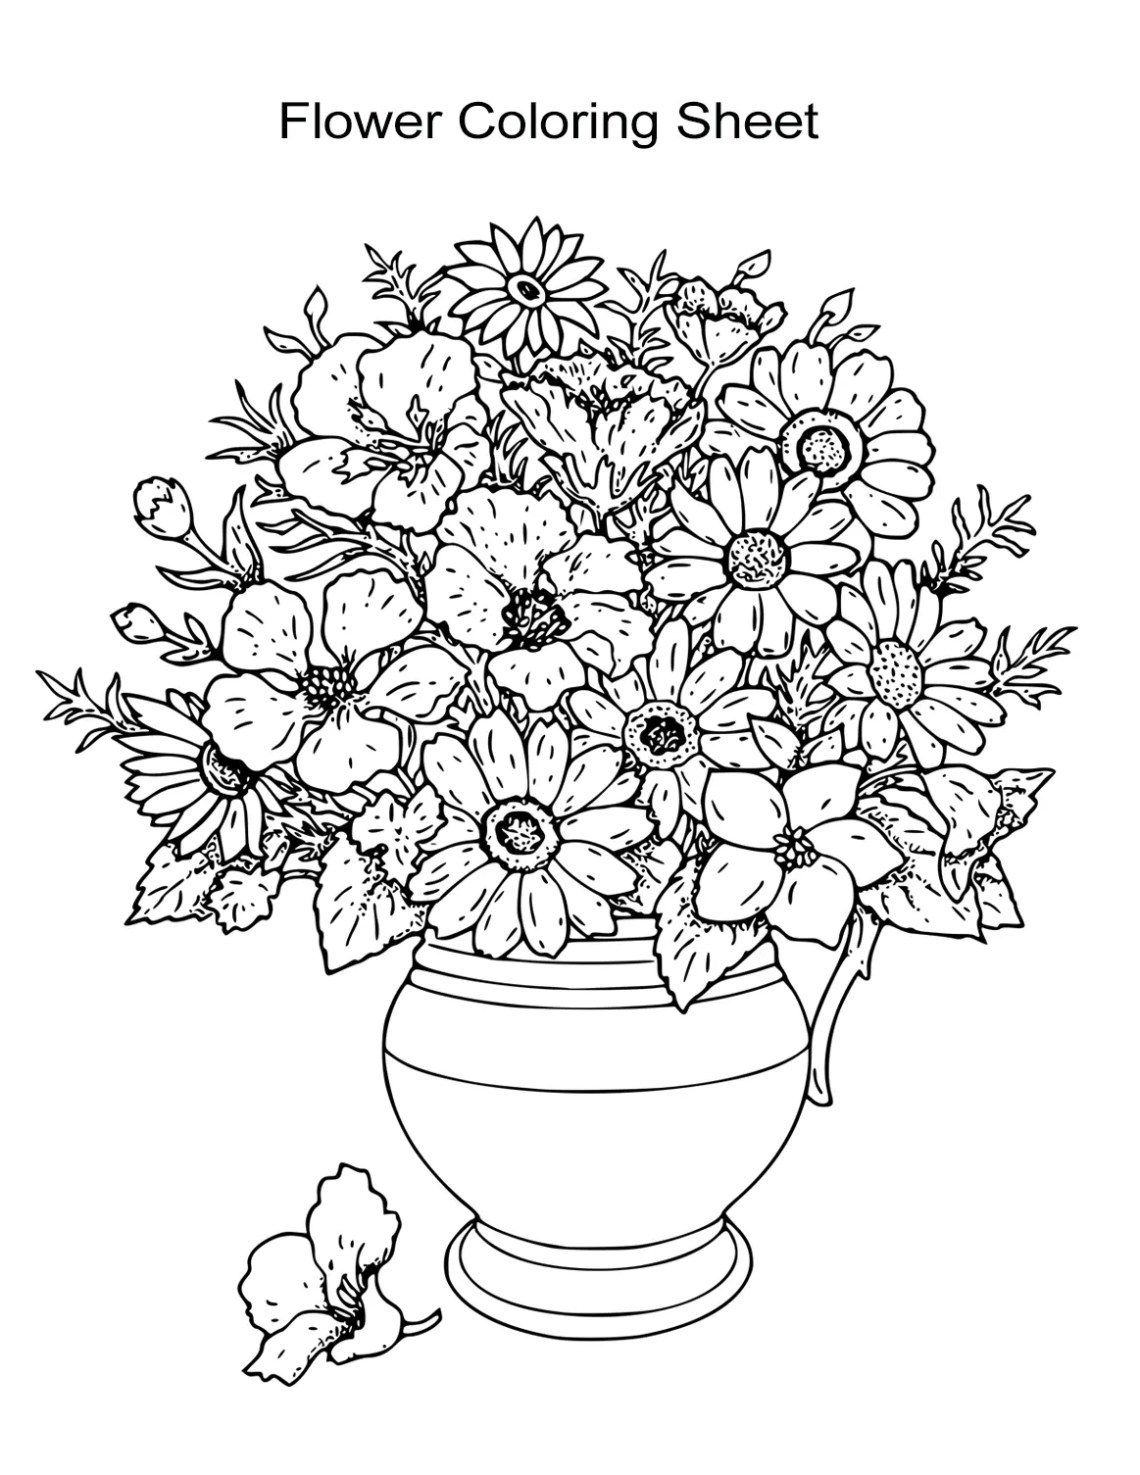 10 Flower Coloring Sheets for Girls and Boys - ALL ESL | colouring pages flowers